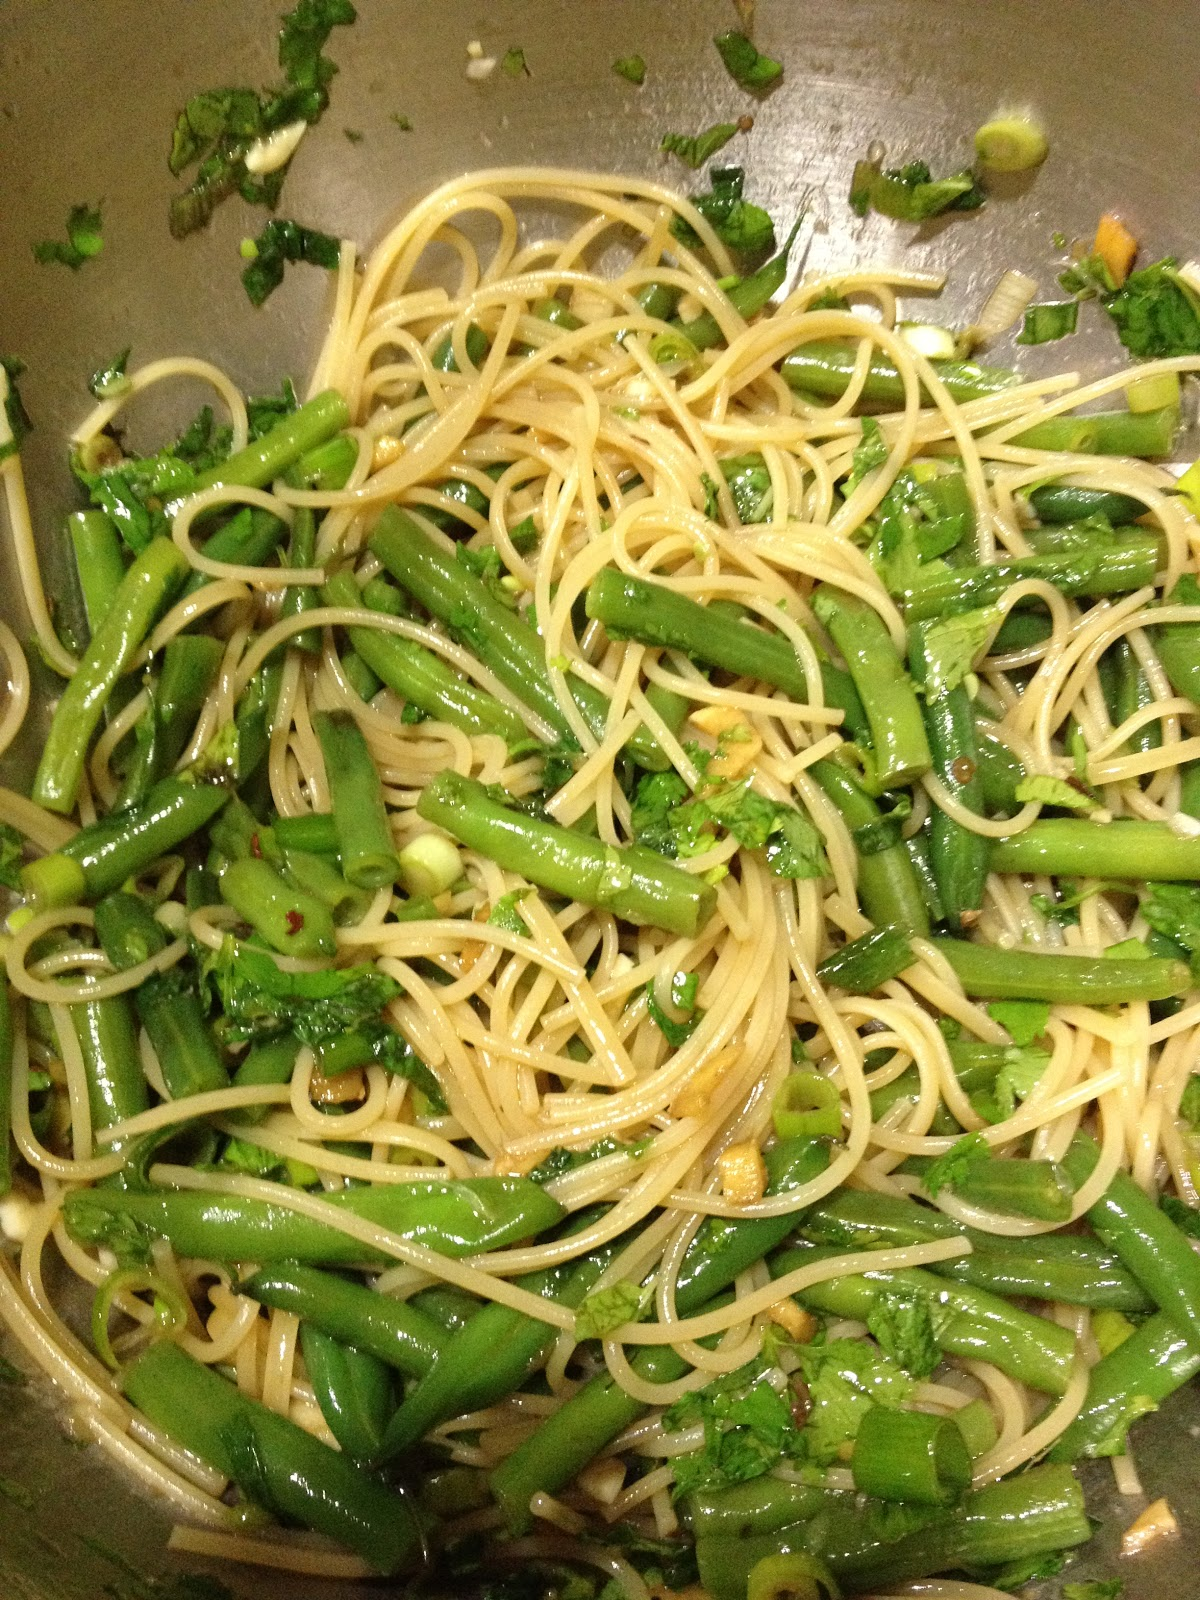 Shelley: Food Obsessed: Thai Noodle and Green Bean Salad